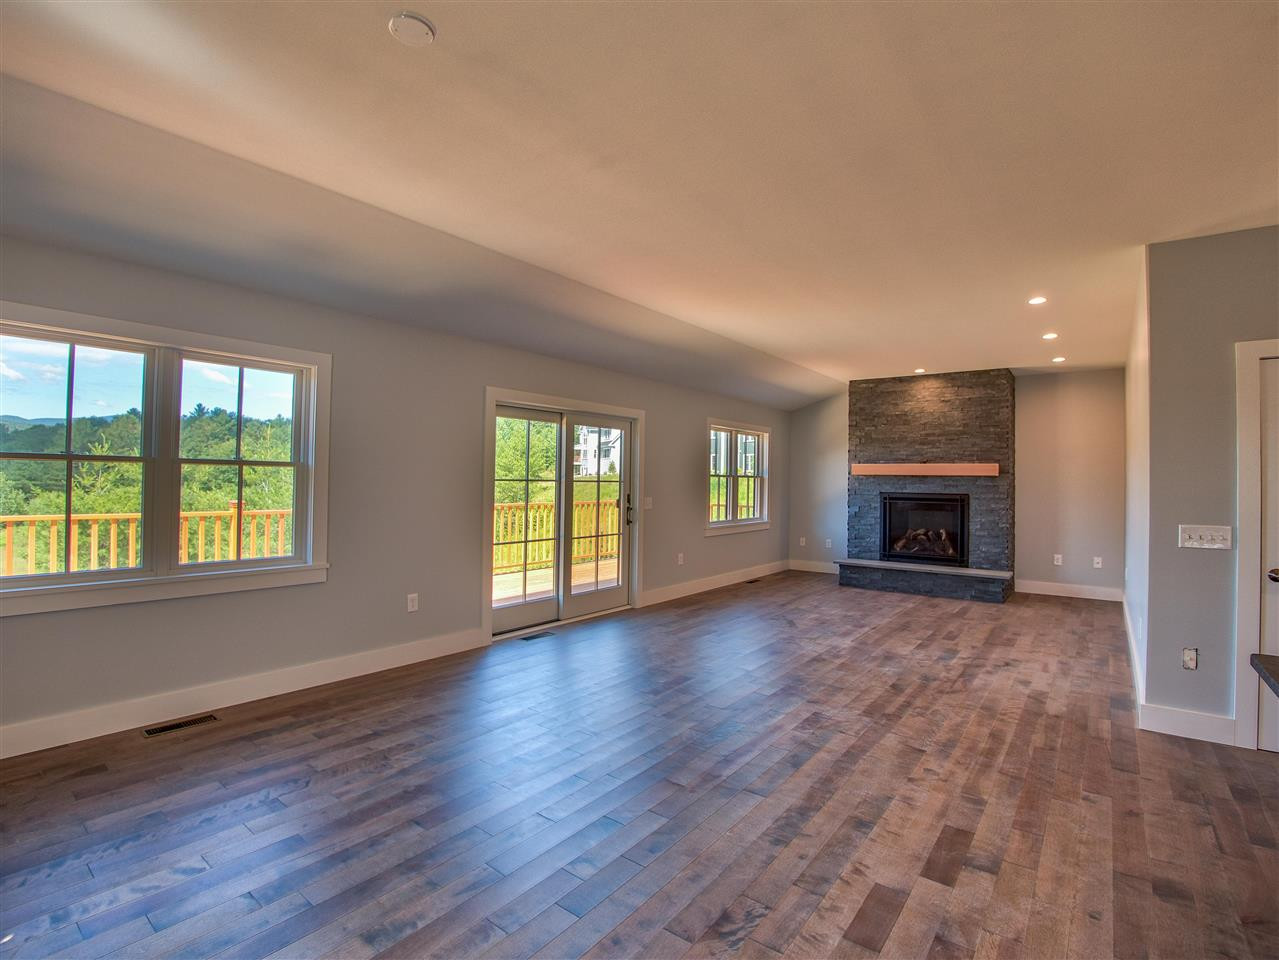 crescent hardwood flooring new orleans of stowe homes for sale search for your dream home in ma ct nh in vmont resd 4705933 9